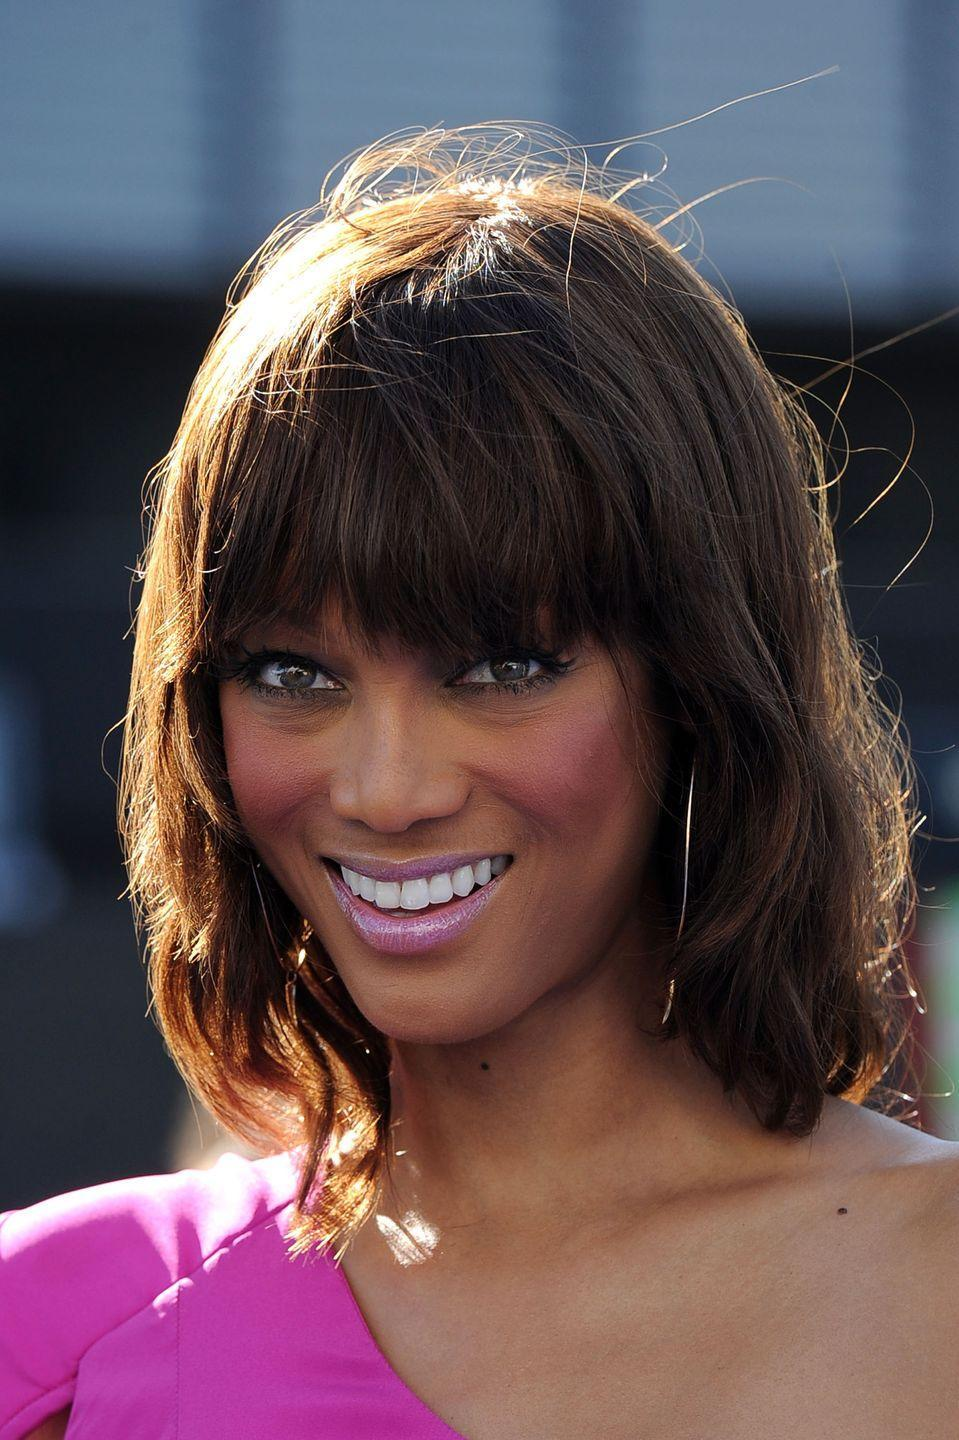 """<p>Make like model <strong>Tyra Banks</strong> and add <a href=""""https://www.goodhousekeeping.com/beauty/hair/g33267765/types-of-bangs/"""" rel=""""nofollow noopener"""" target=""""_blank"""" data-ylk=""""slk:full bangs"""" class=""""link rapid-noclick-resp"""">full bangs</a> to a long asymmetrical bob to frame the top of the face.</p>"""